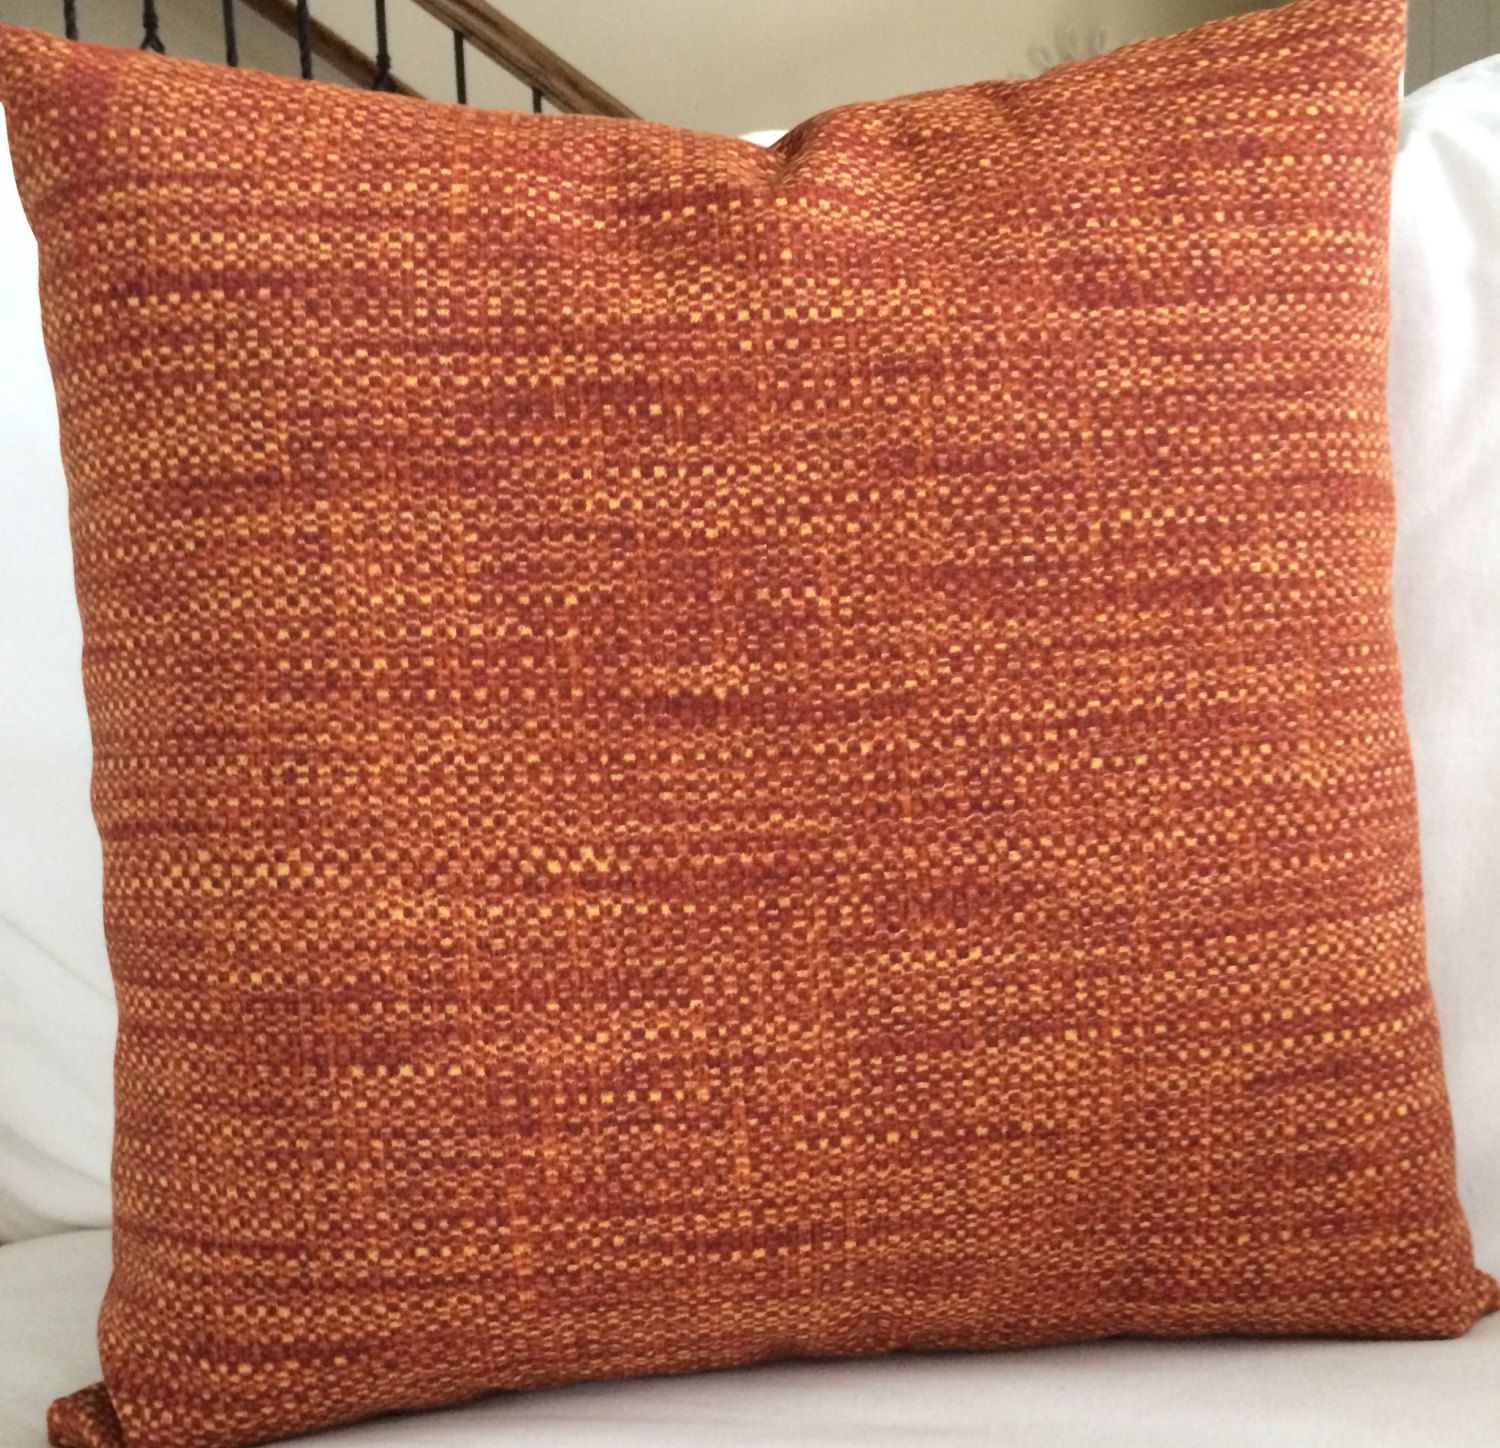 buy white pillows decorative living to throw online orange and suede masculine sofa where pretty black pillow room